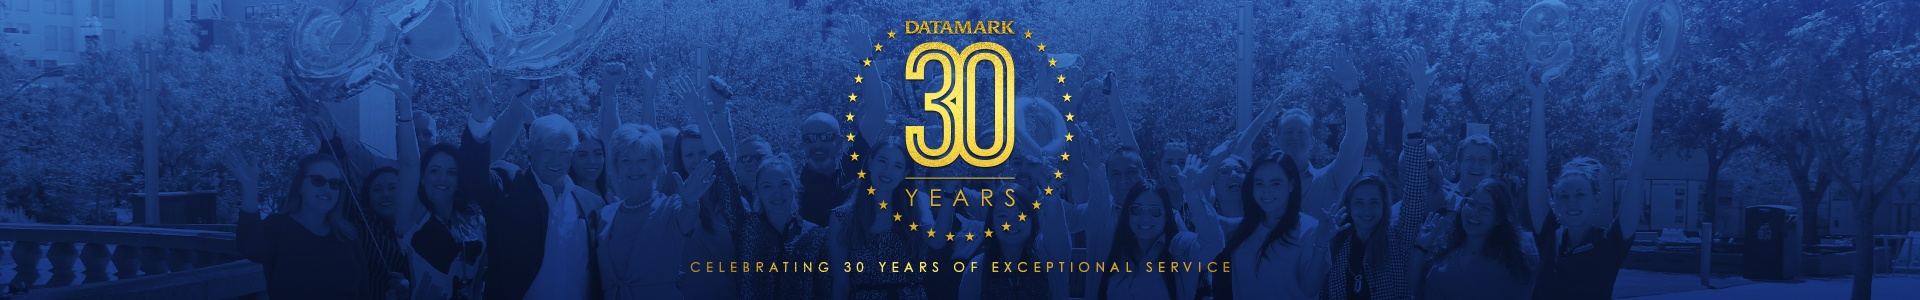 DATAMARK Celebrating 30 Years of Exceptional Service